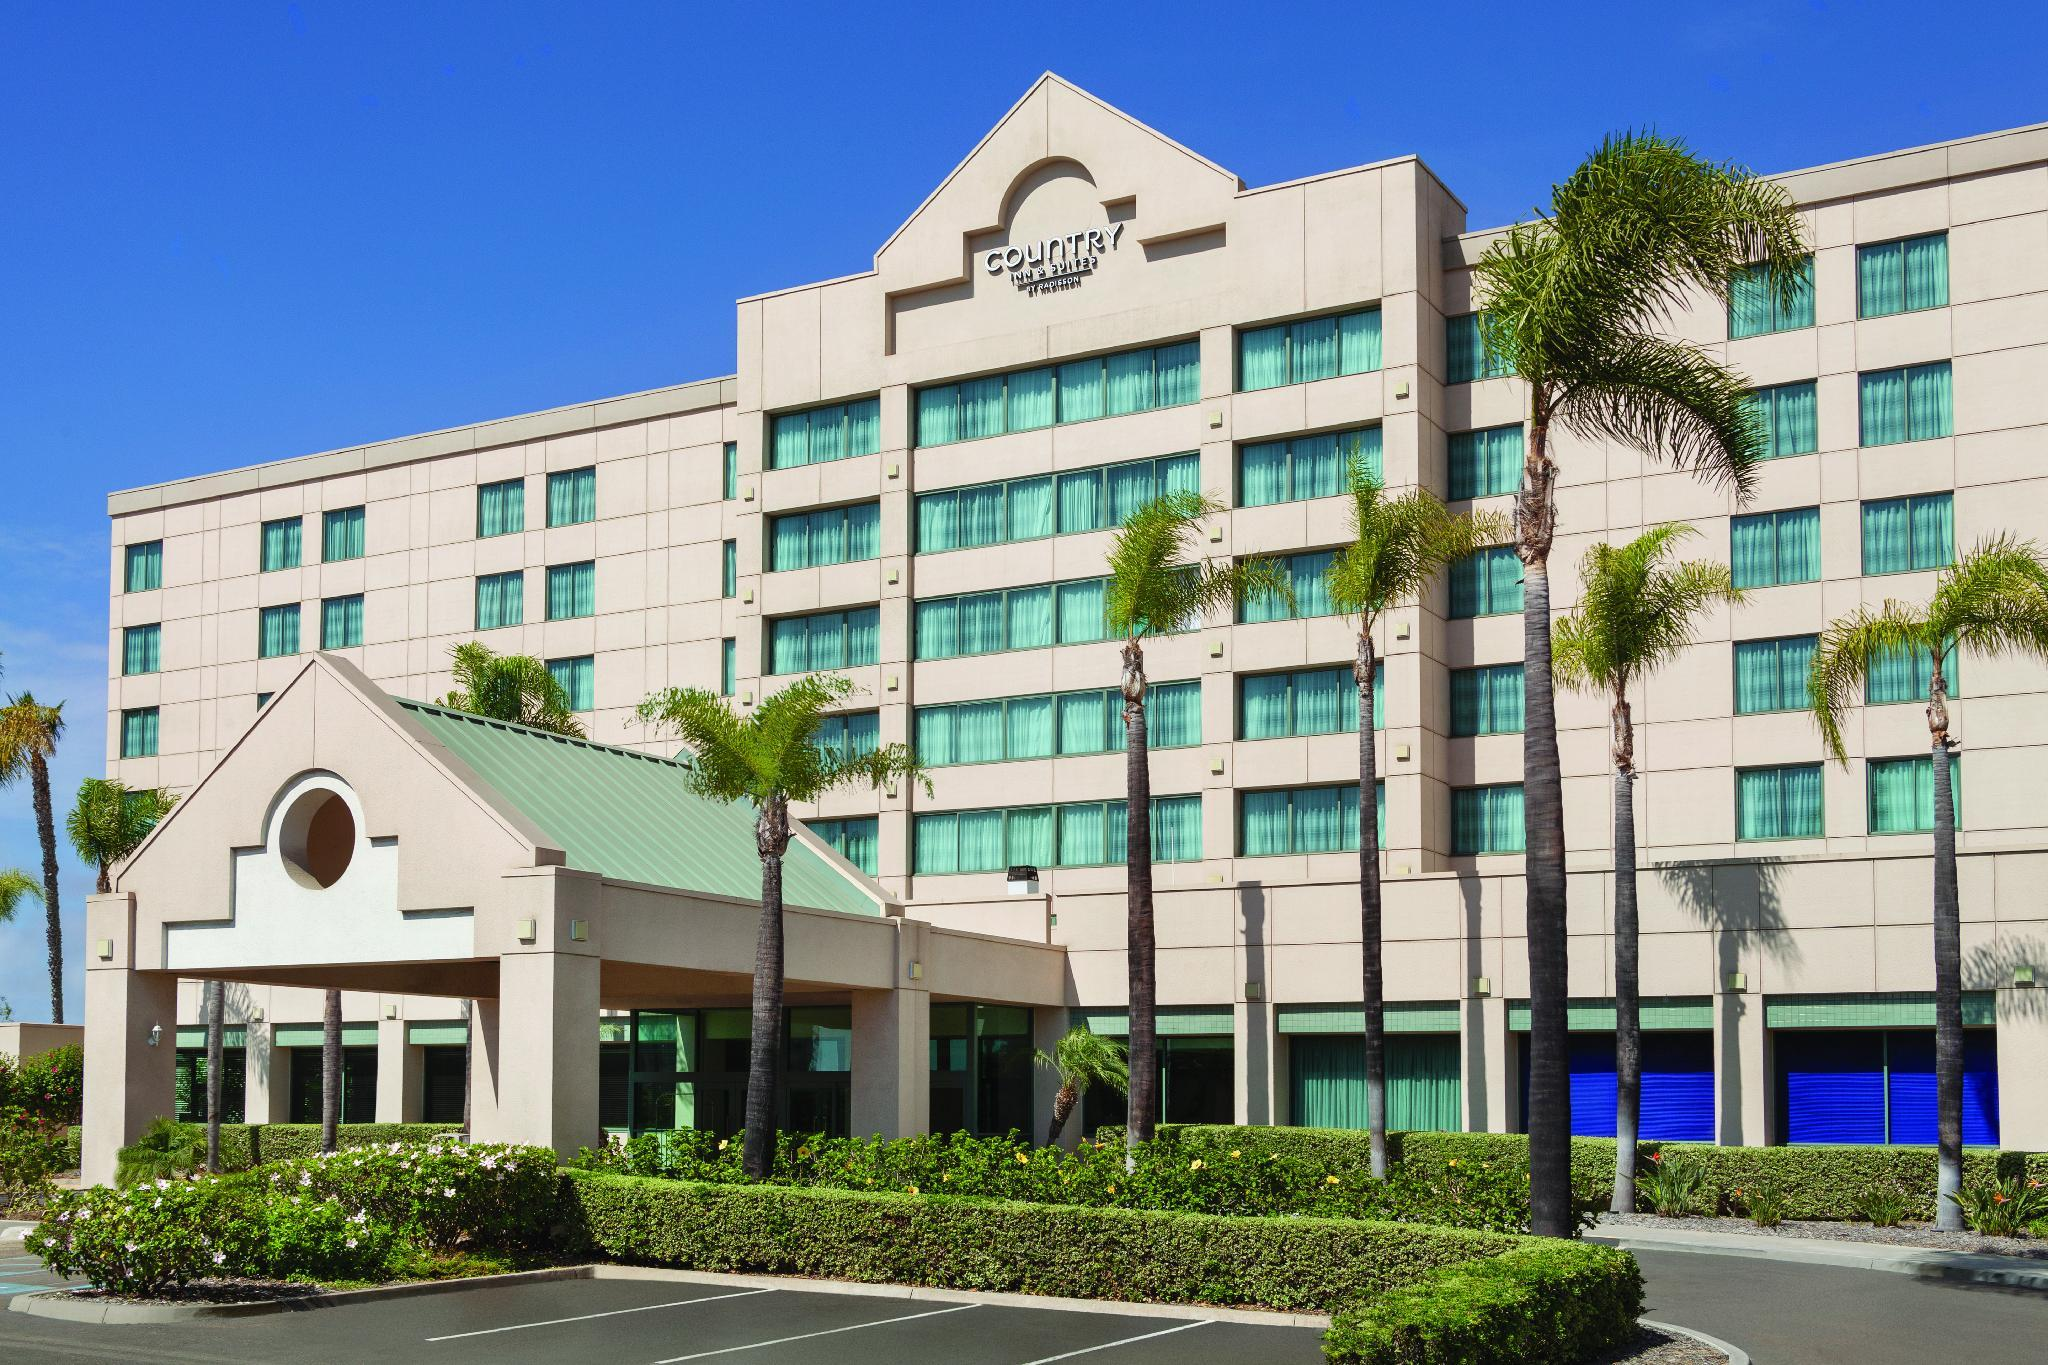 Country Inn & Suites by Radisson, San Diego North image